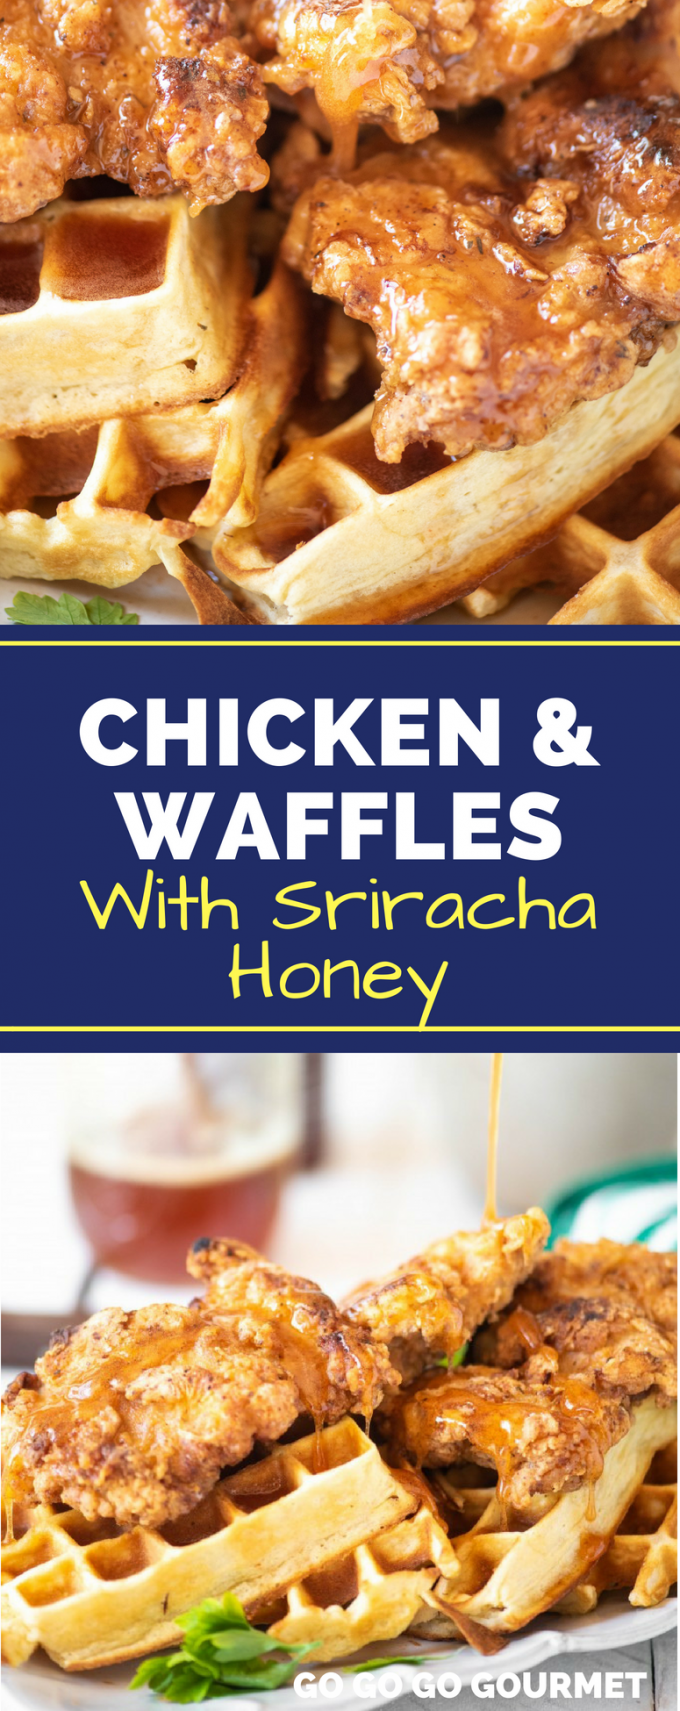 This easy, Southern-style Chicken and Waffles recipe is perfect for your next brunch! Paired with a sweet and spicy honey sriracha sauce, you can serve it as either an appetizer, breakfast or lunch! #chickenandwaffles #easychickenandwafflesrecipe #easybrunchrecipes #gogogogourmet via @gogogogourmet